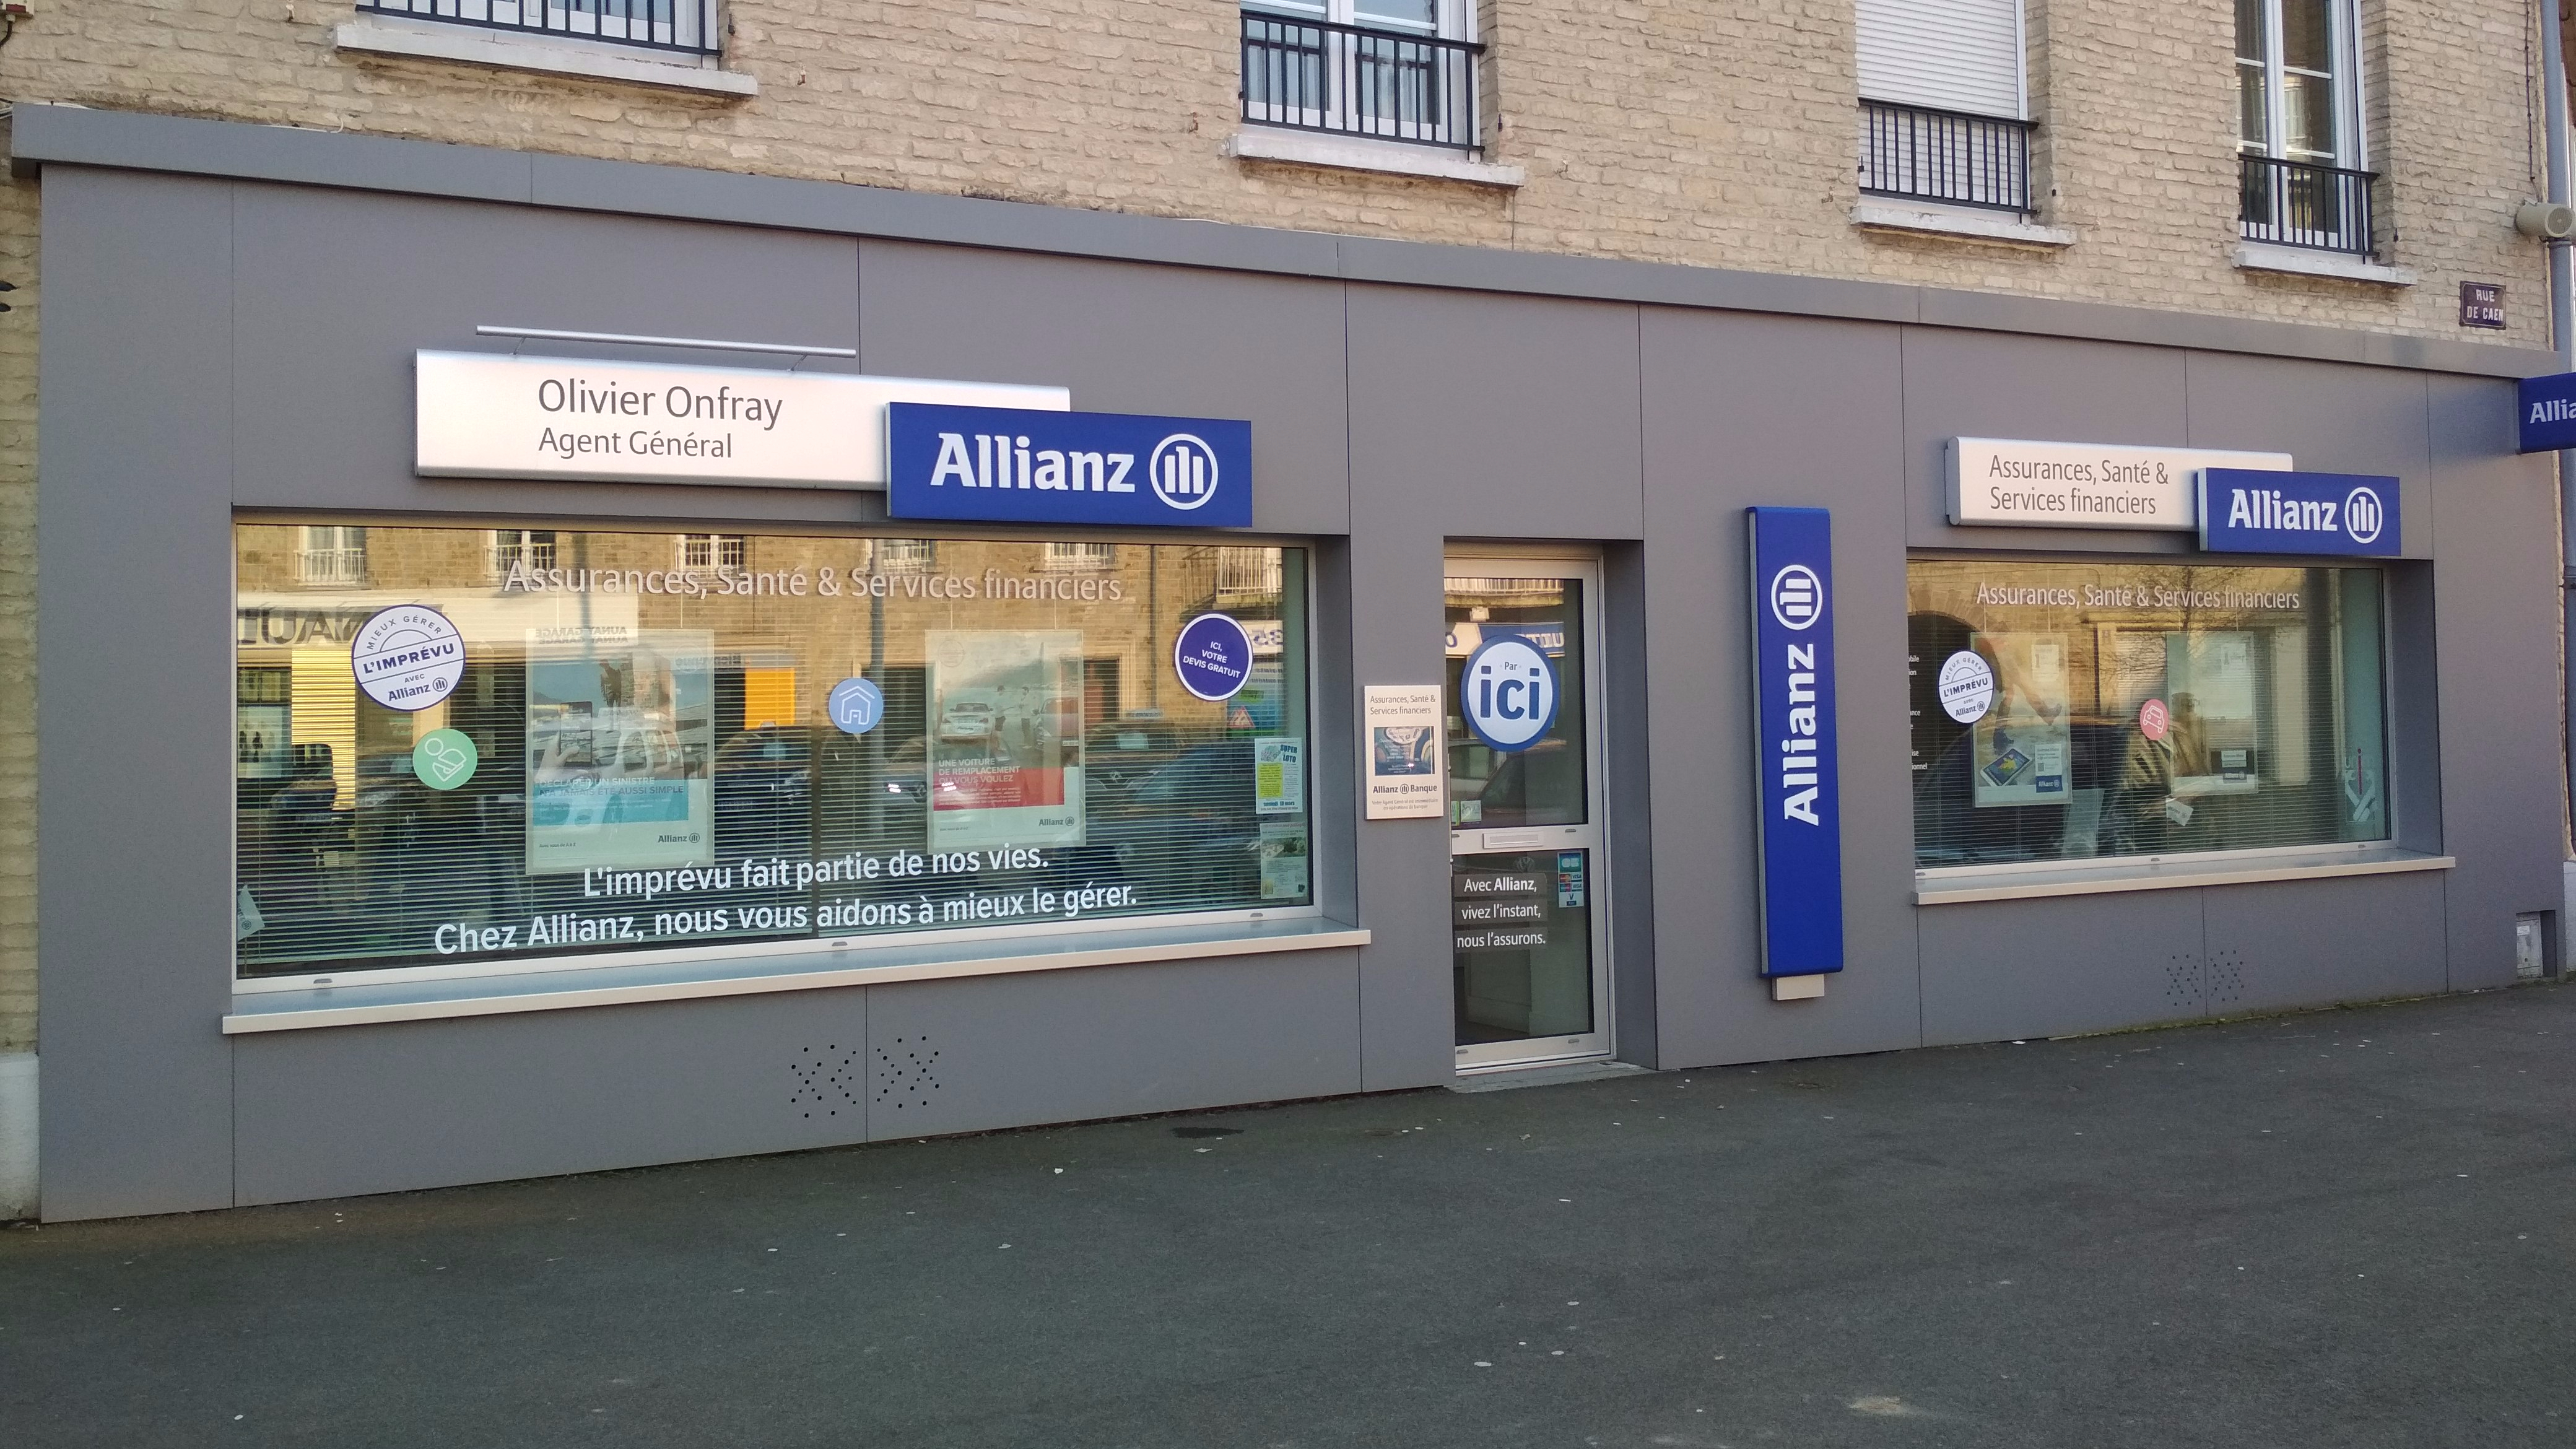 Allianz Aunay sur odon - Olivier ONFRAY